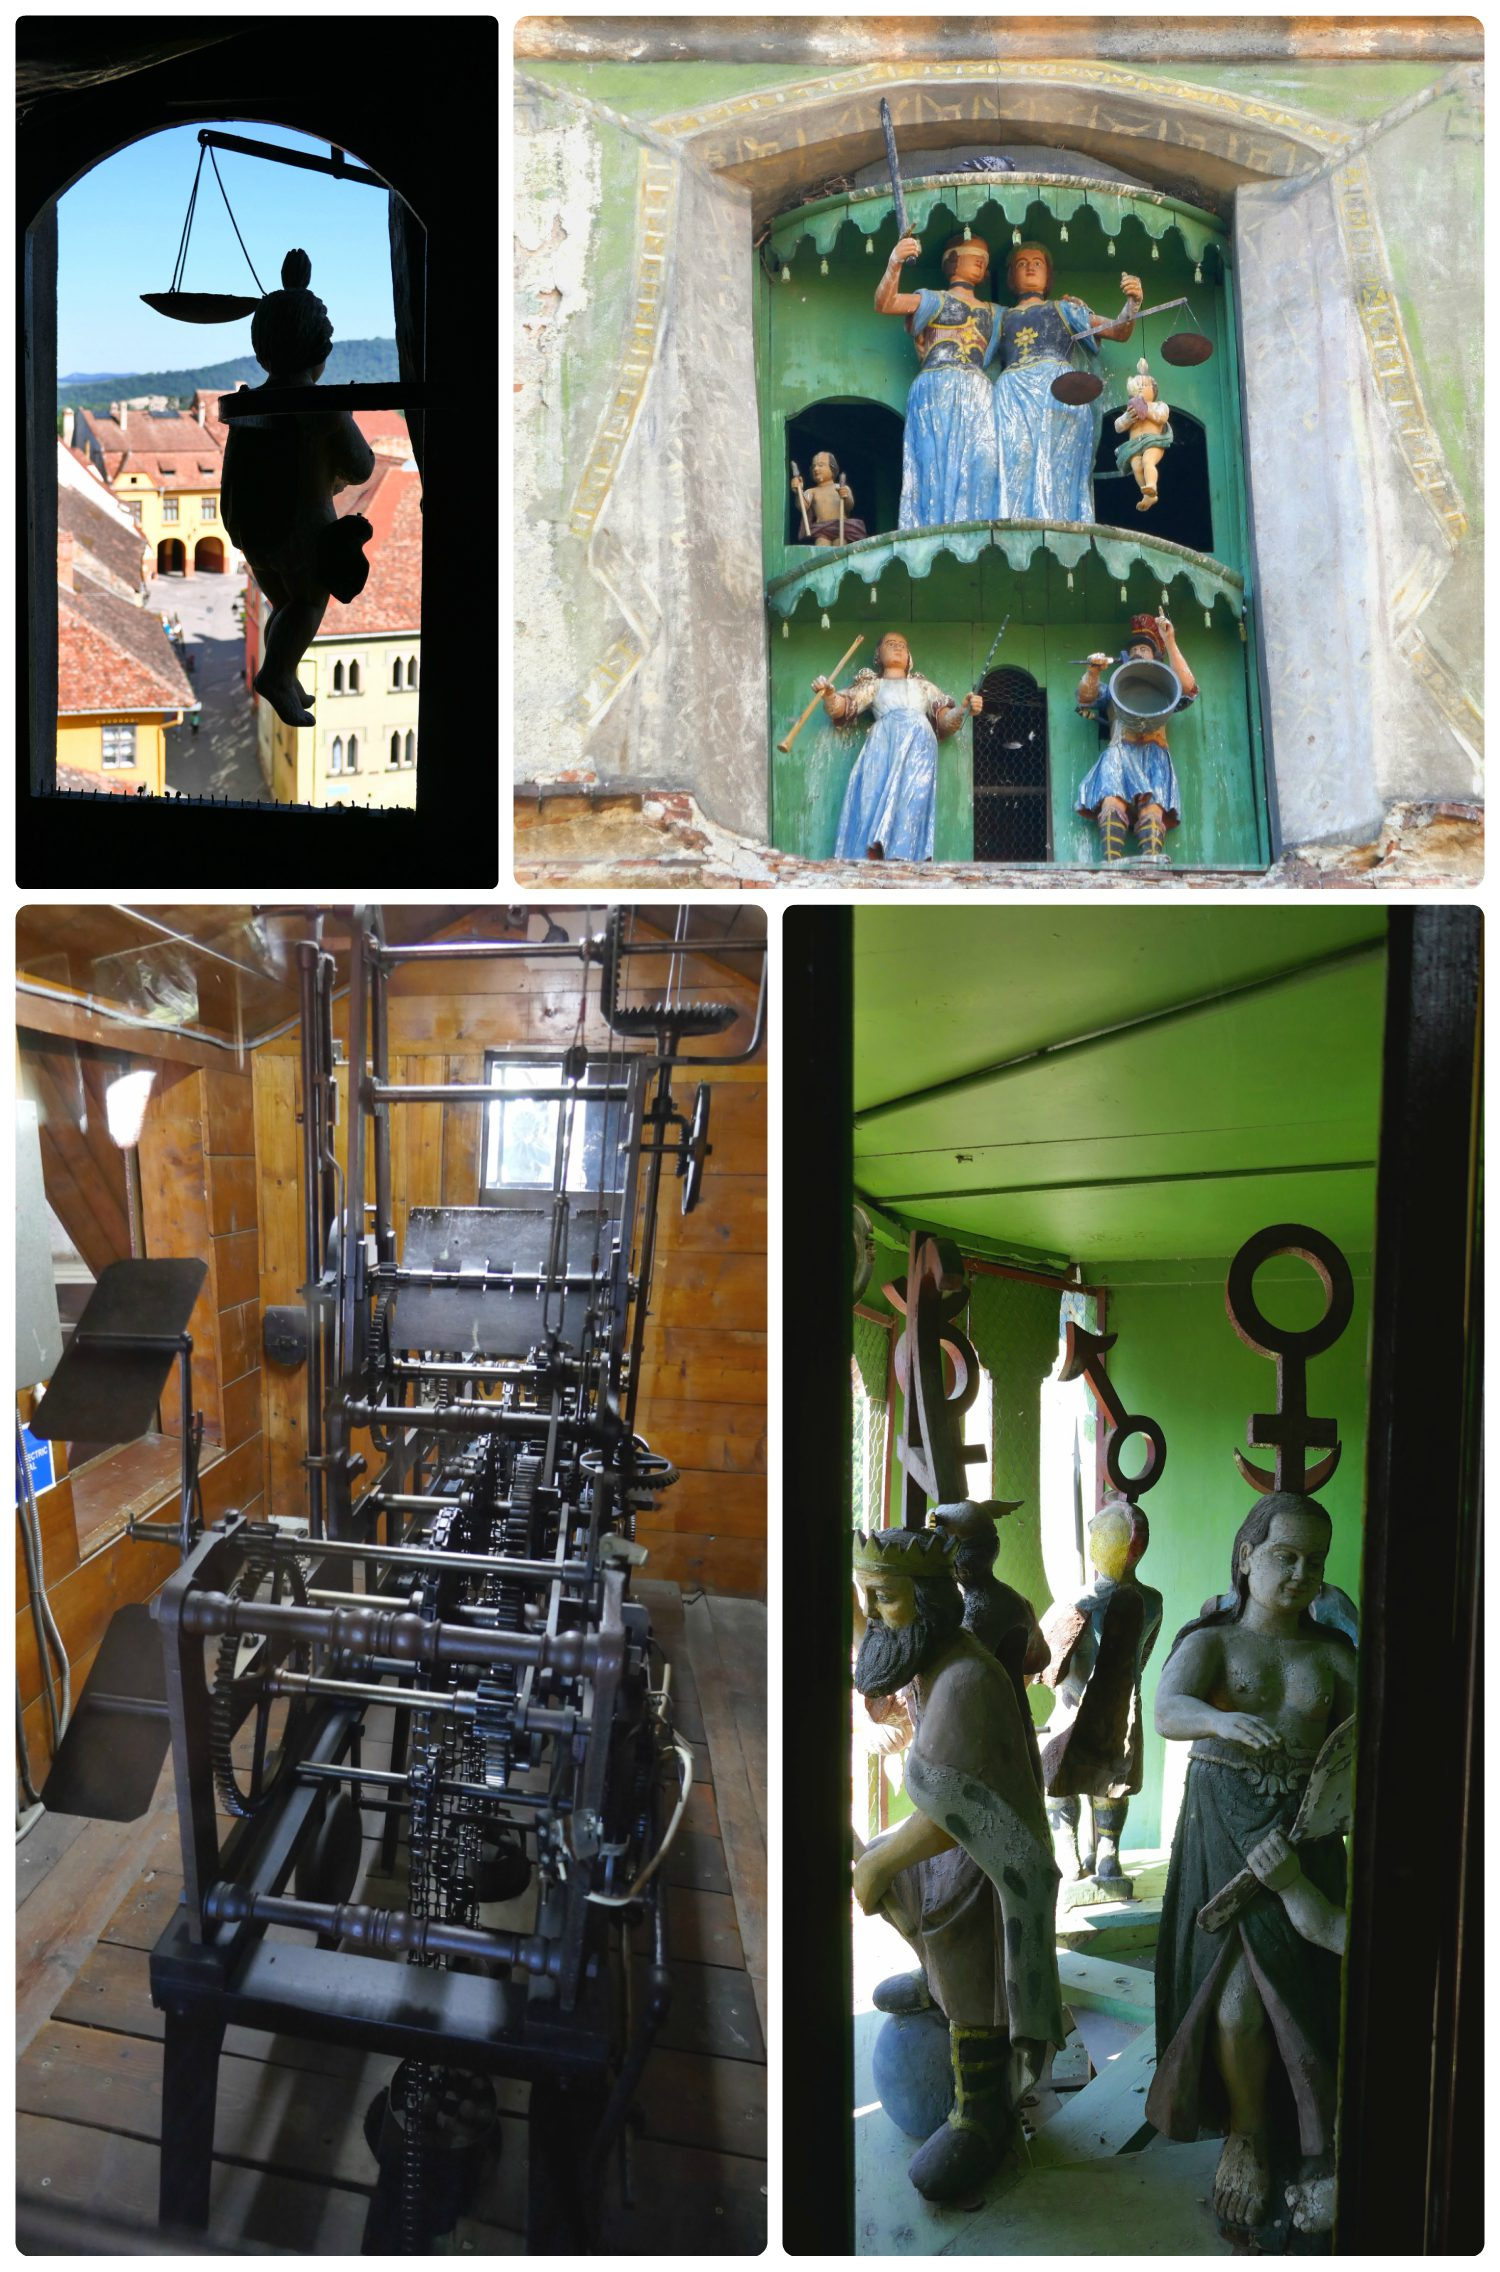 The figurines of the Clock Tower are fantastic to view from the cobble stone streets of Sighisoara, but even more amazing to see from inside the tower. We were able to see the inside workings of the clock from a large window, and the figurines through smaller windows.